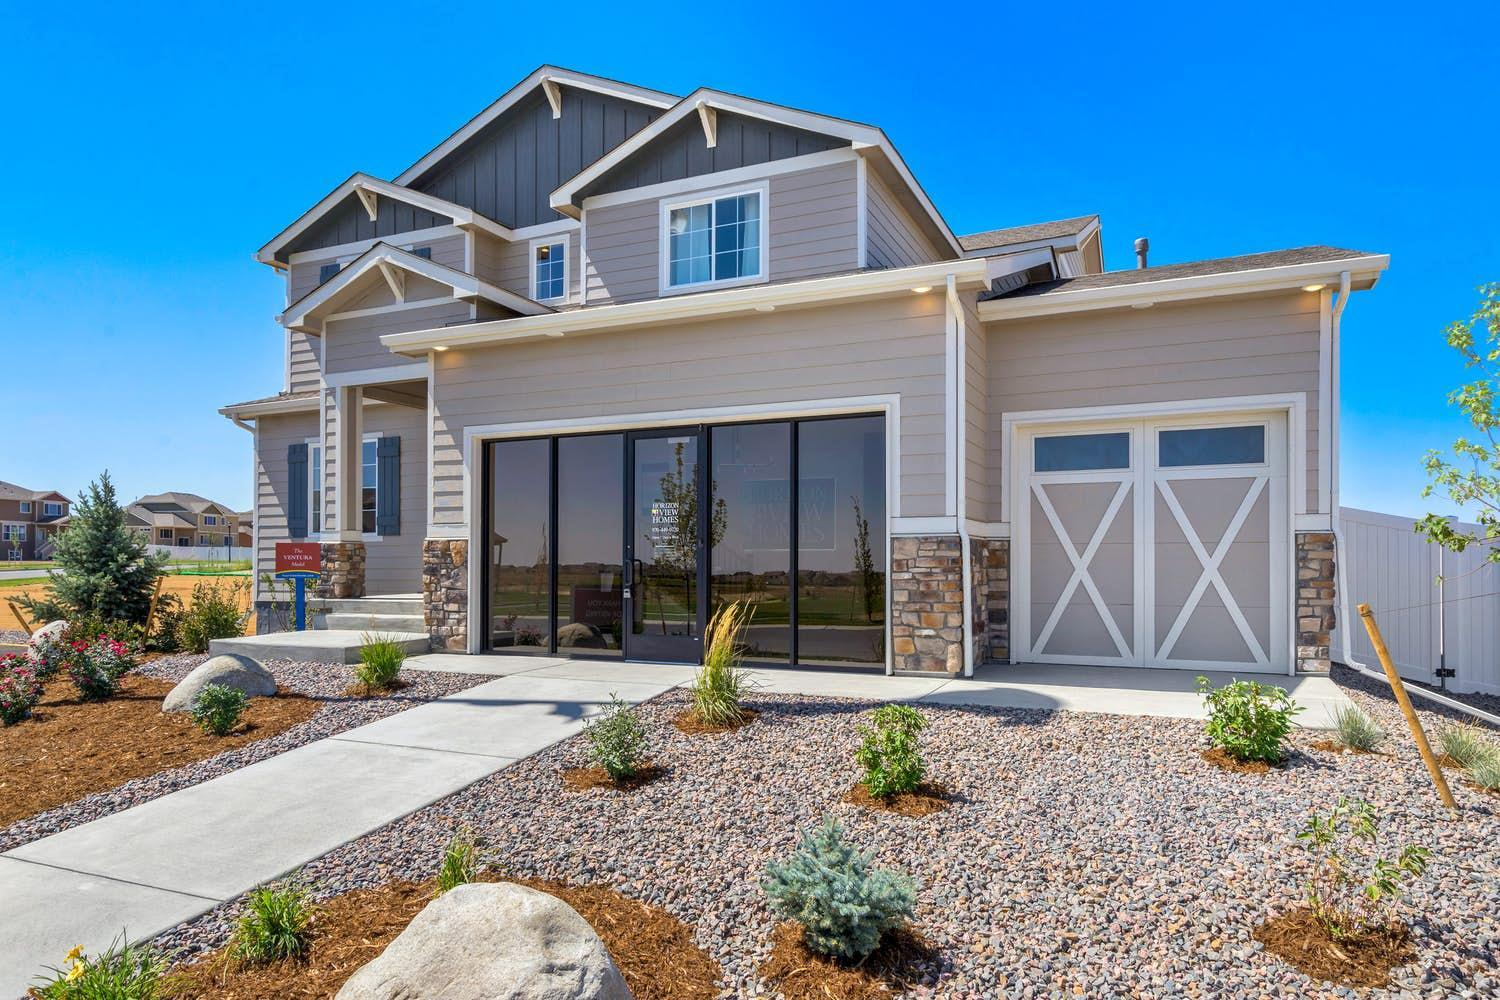 Exterior featured in the Ventura at Sorrento By Northern Colorado in Greeley, CO